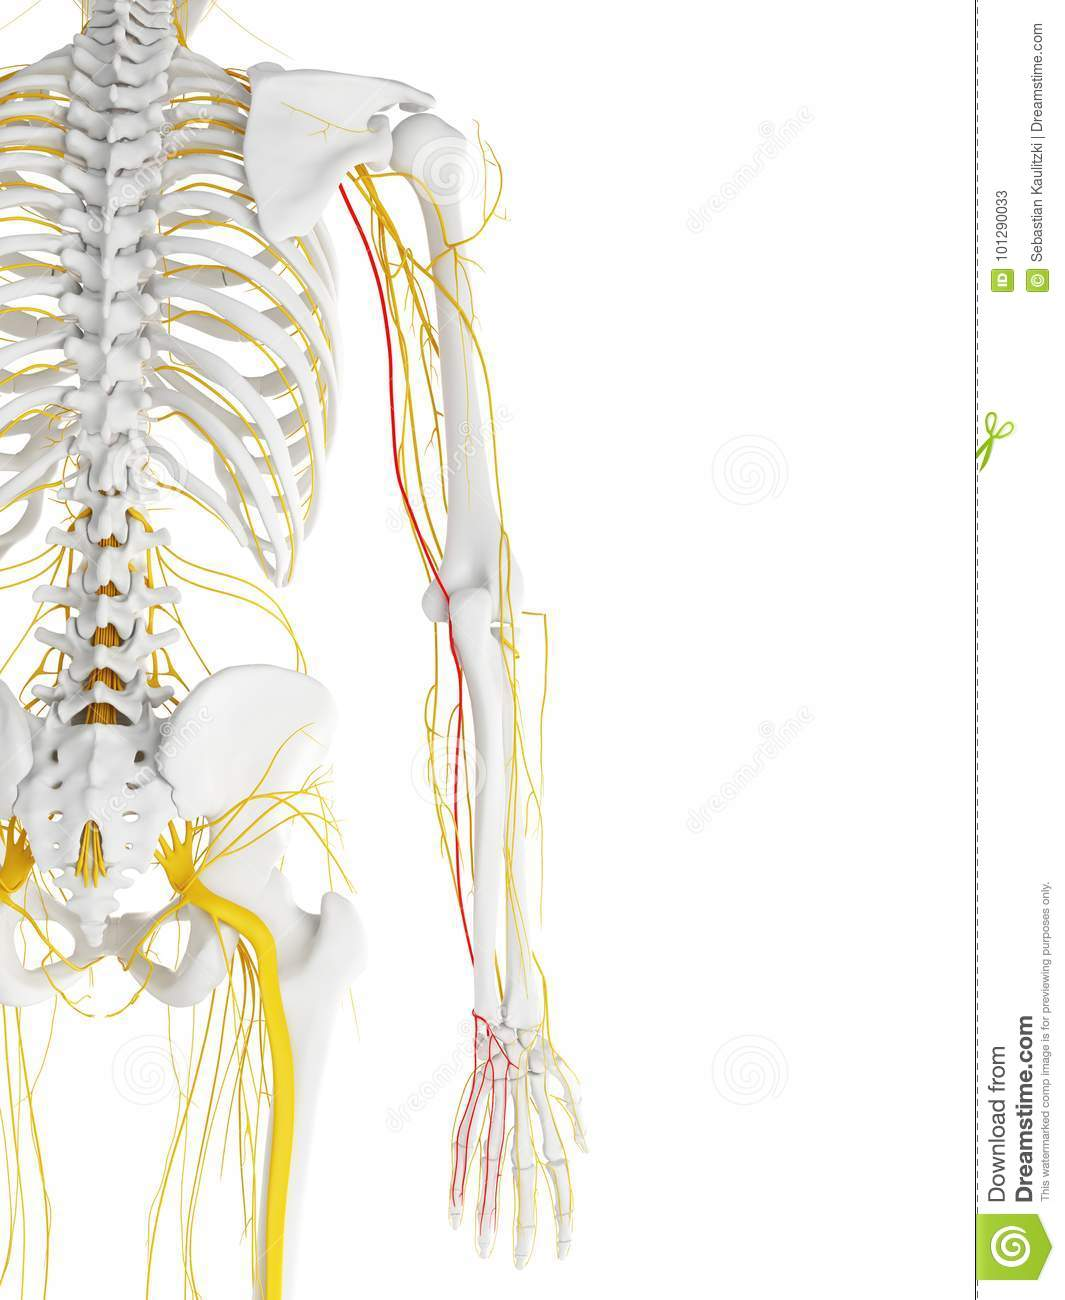 ulnar nerve diagram lily flower parts the stock illustration of anatomical 3d rendered medically accurate